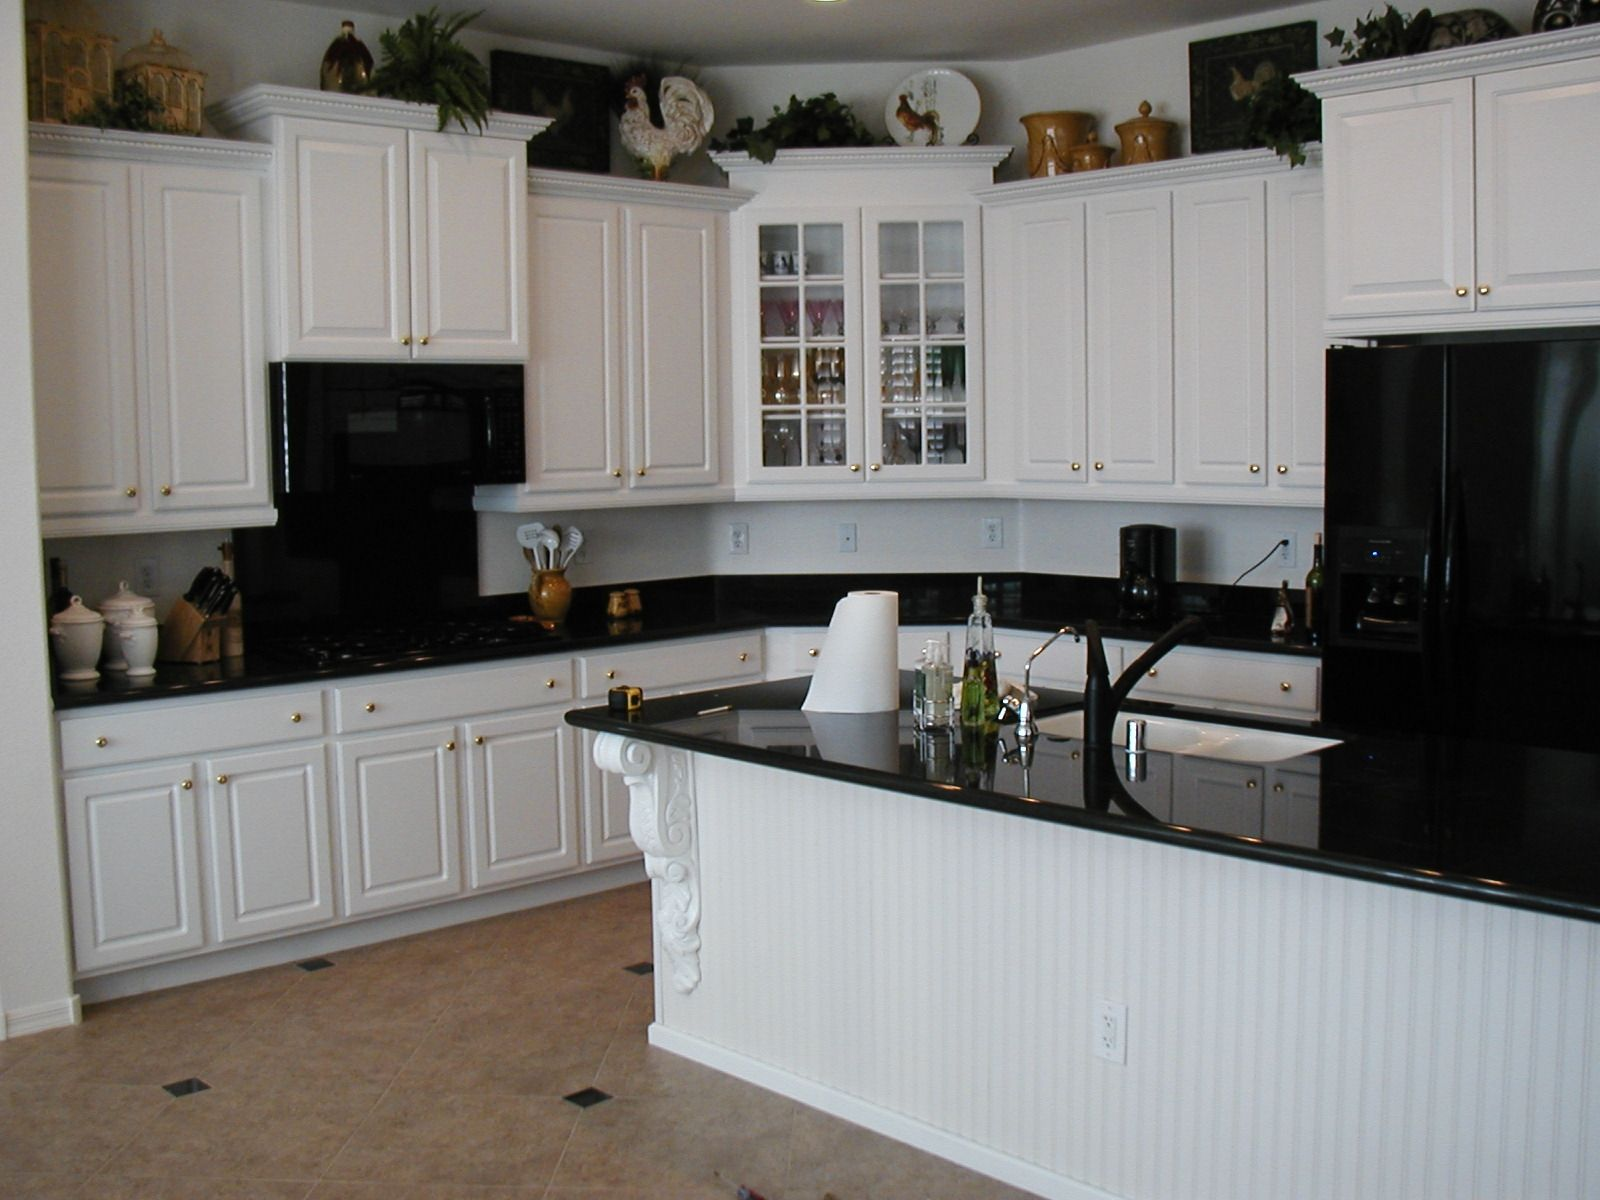 antique white kitchen cabinets with black appliances, creamy white kitchen cabinets with black appliances Are